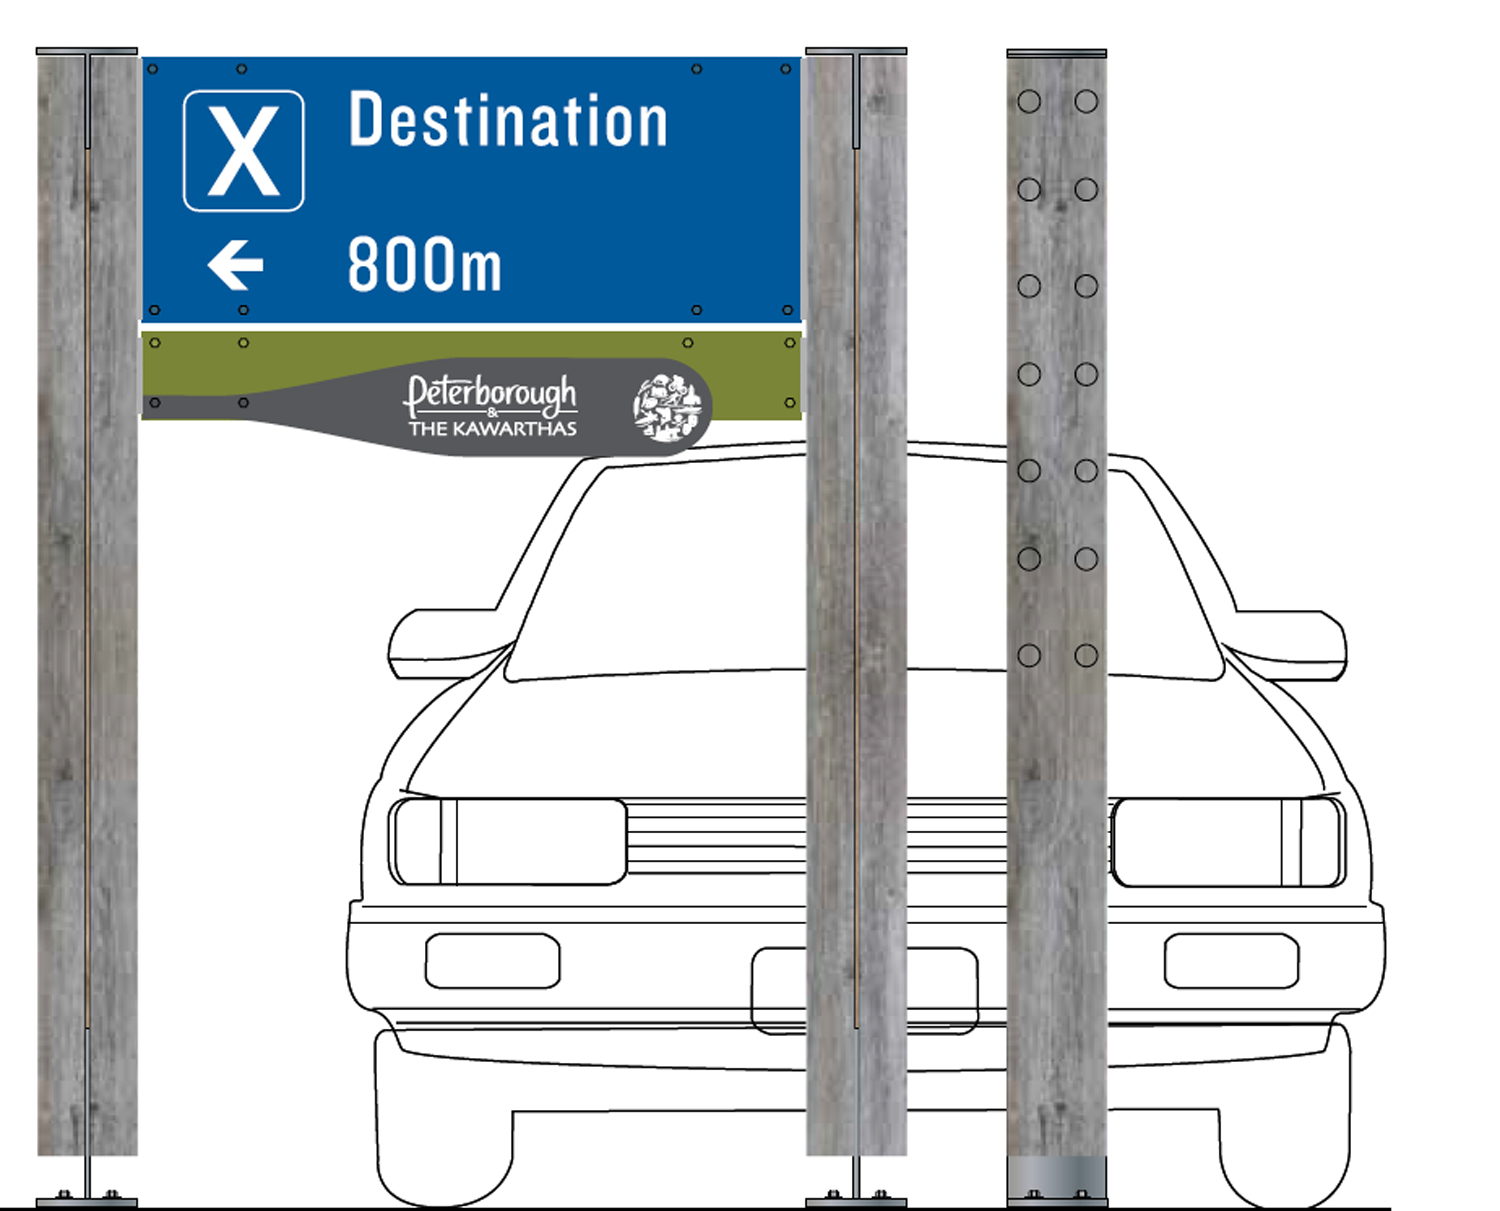 A range of highway signs guide visitors through the region, subtly presenting the regional brand, but focusing on the destinations that are nearby